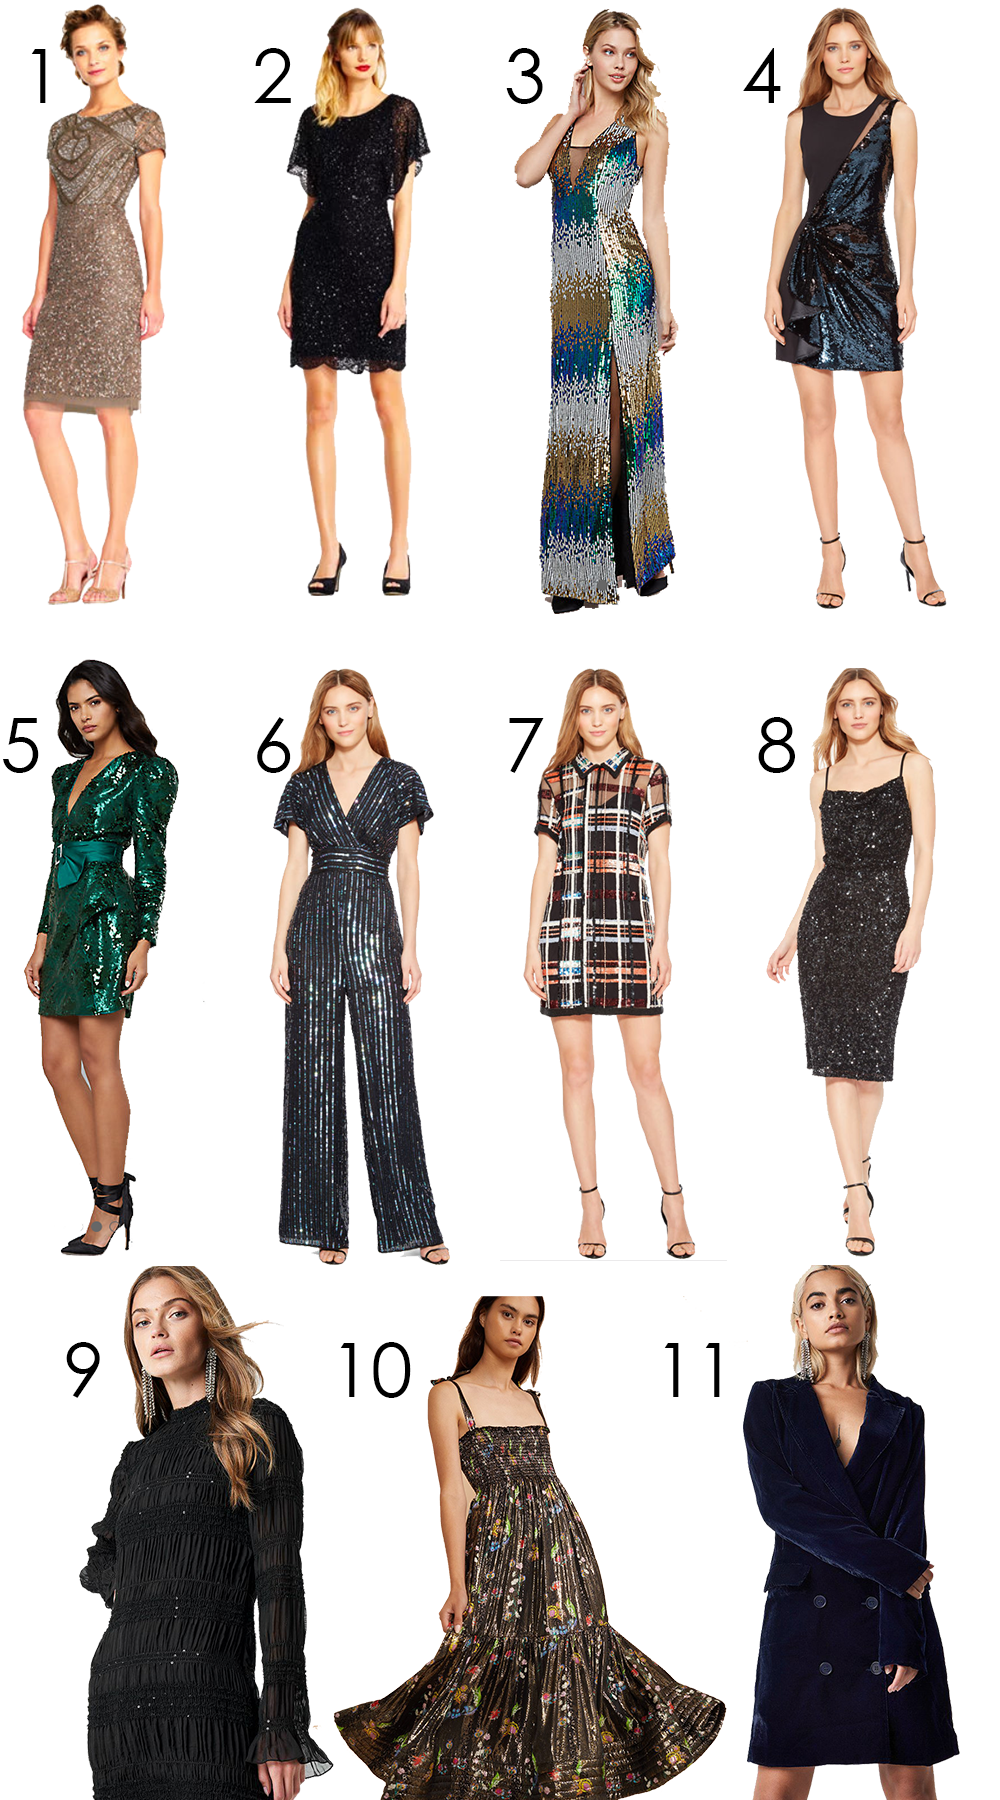 Glitzy Holiday Party Dresses for Christmas and New Year's Eve Parties I DreaminLace.com #HolidayParty #PartyDresses #CocktailDress